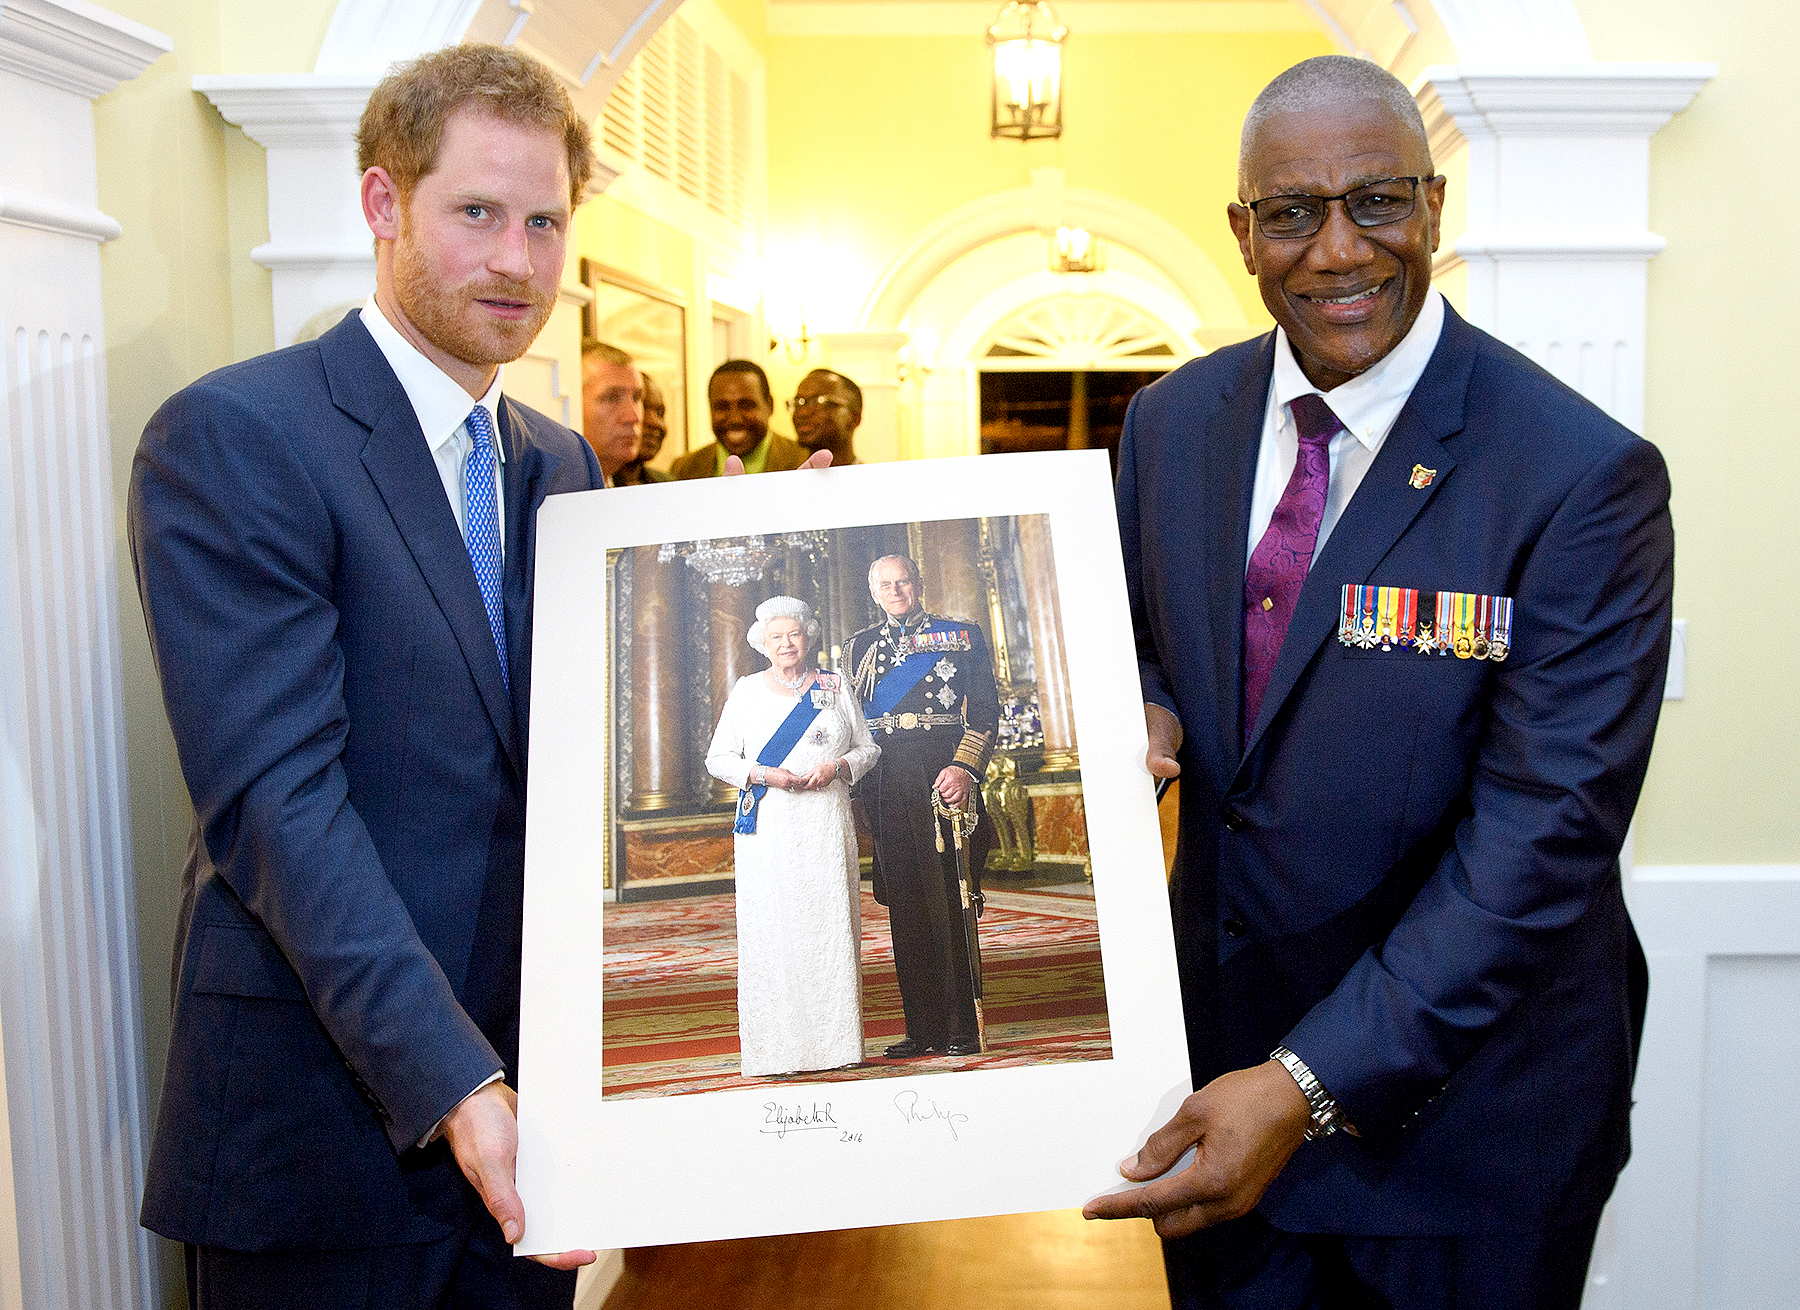 Prince Harry presents a photo of Queen Elizabeth II and Prince Philip, Duke of Edinburgh, as he attends a reception hosted by the Governor General, Sir Rodney Williams, at the newly renovated Clarence House on the first day of an official visit, on Nov. 20, 2016, in Antigua. Prince Harry's visit to the Caribbean marks the 35th anniversary of independence in Antigua and Barbuda and the 50th anniversary of independence in Barbados and Guyana.